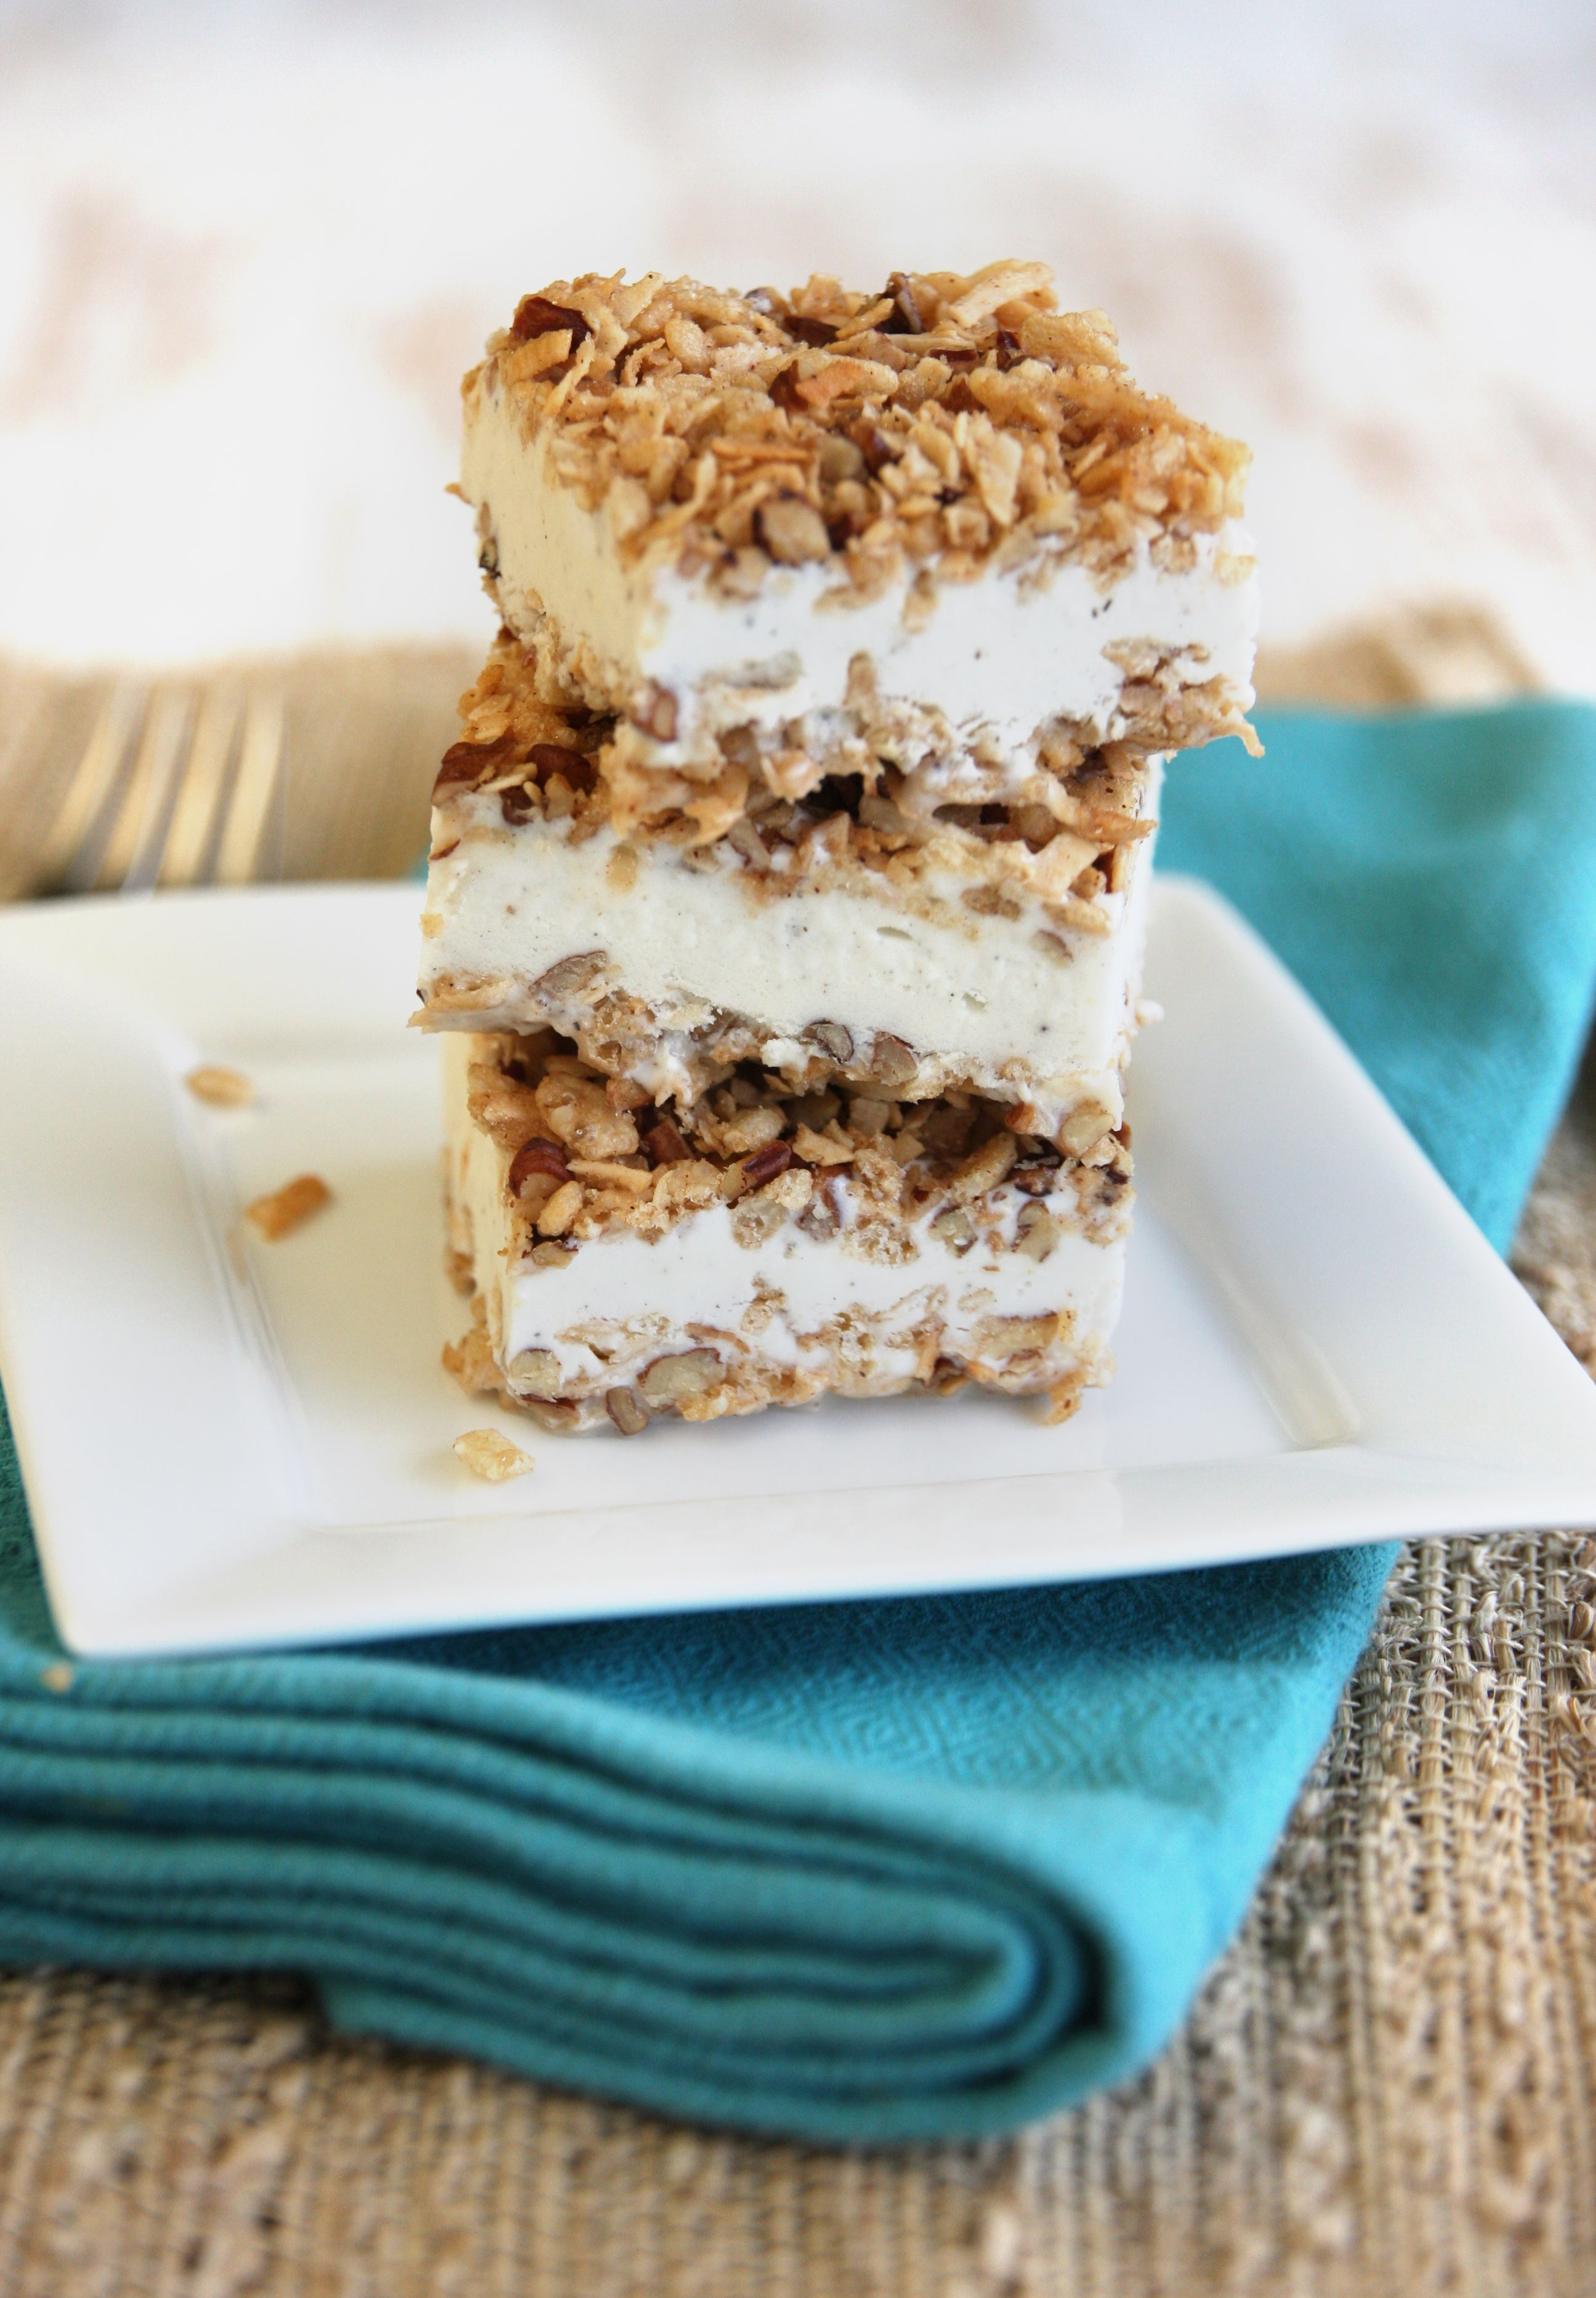 Ice Cream Crunch Bars from ourbestbites.com